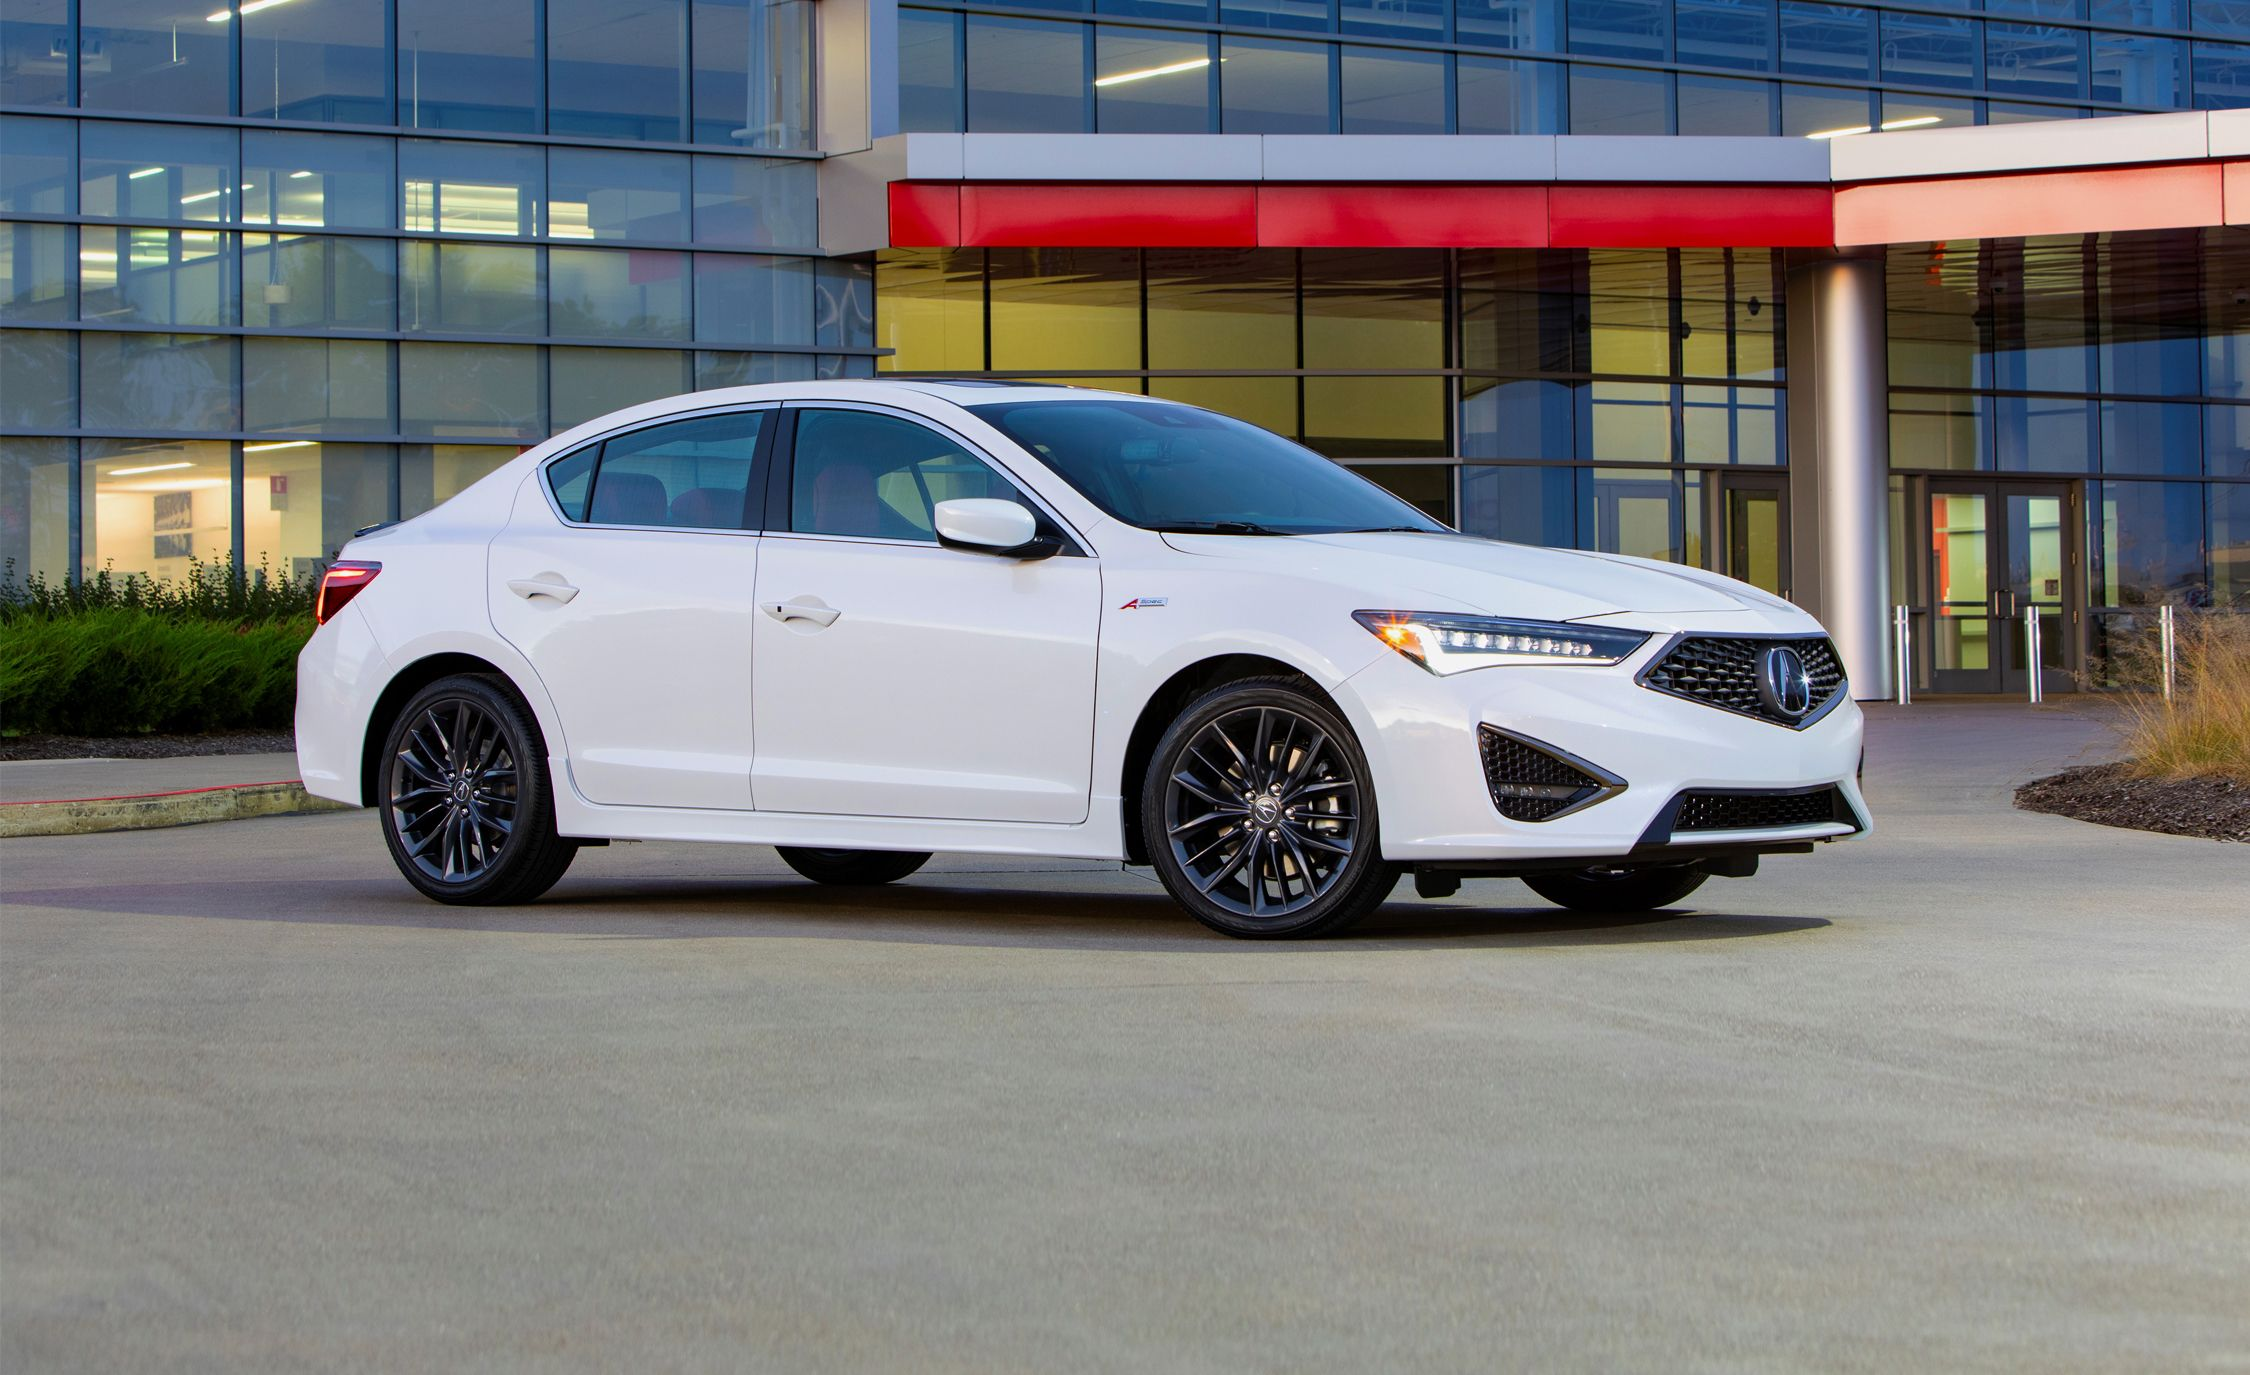 The 2019 Acura Ilx A Spec Is More Compelling But Not Sportier